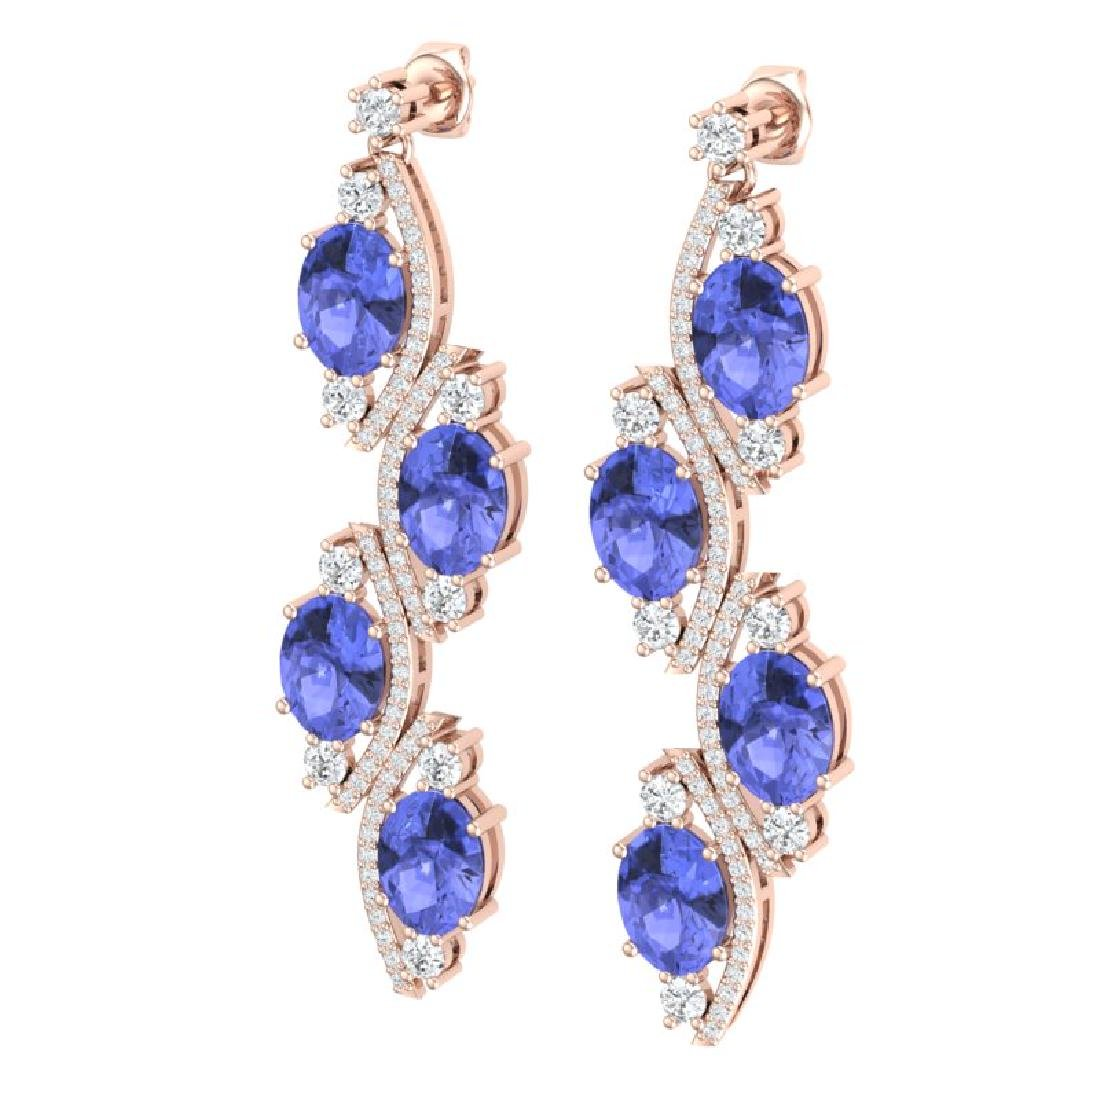 16.23 CTW Royalty Tanzanite & VS Diamond Earrings 18K - 2